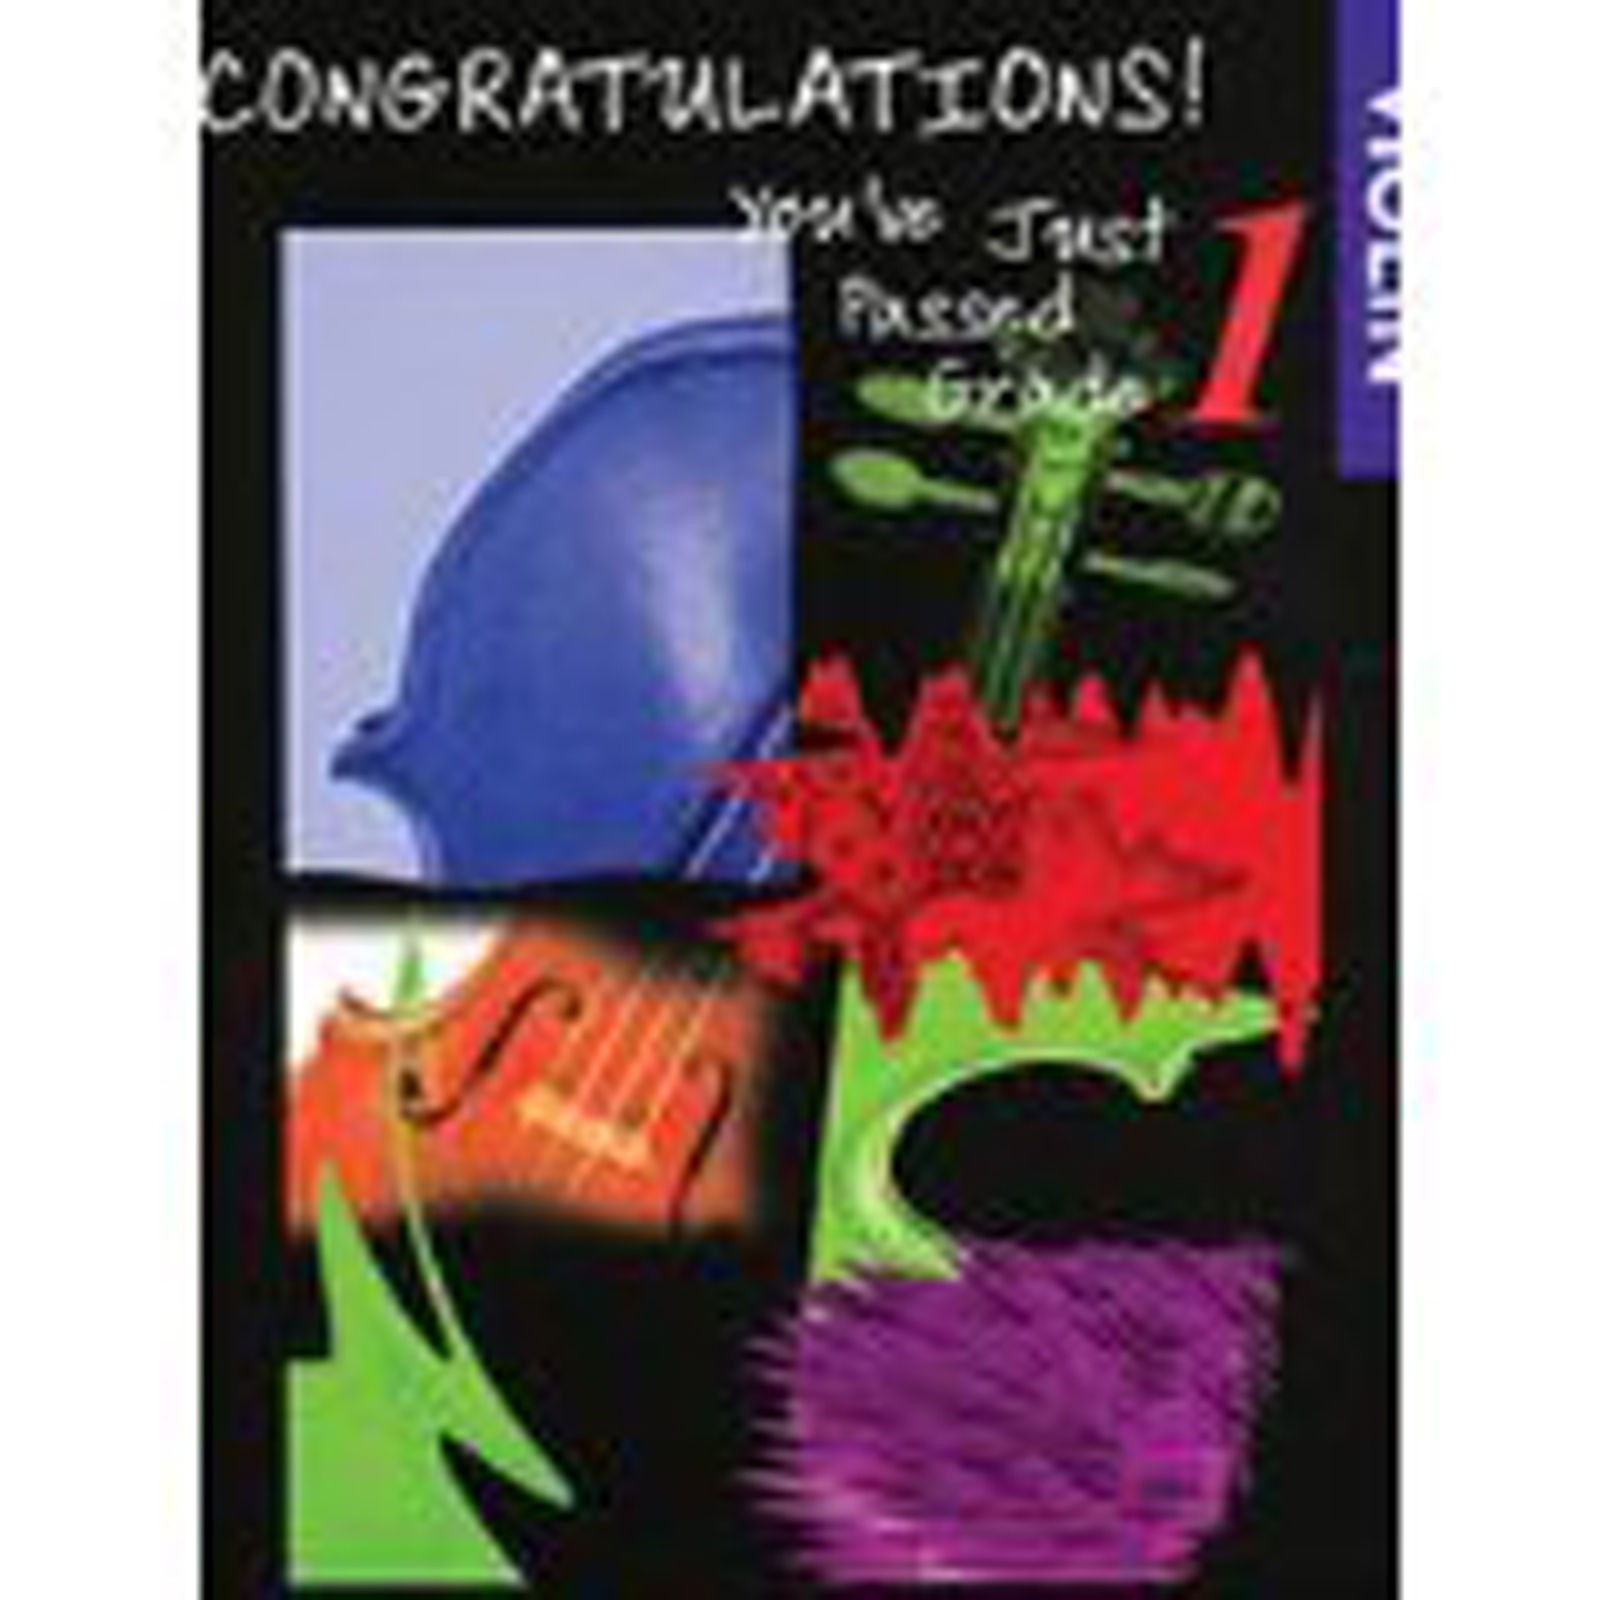 Congratulations You've Just Passed Grade 1 Violin & Piano Book S103